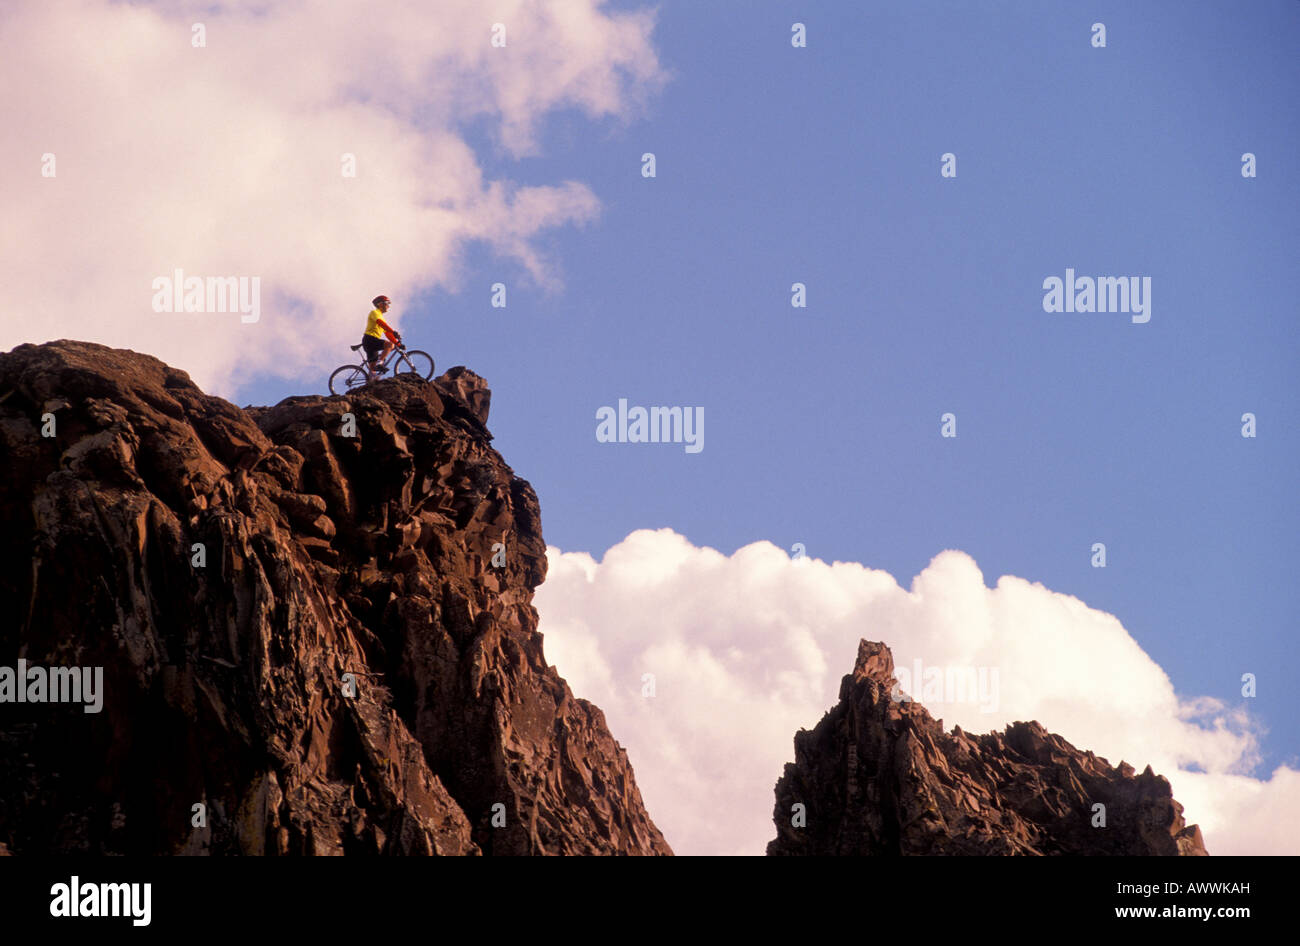 A mountain biker surveys the view as he pauses on a rocky crag in central Washington State - Stock Image